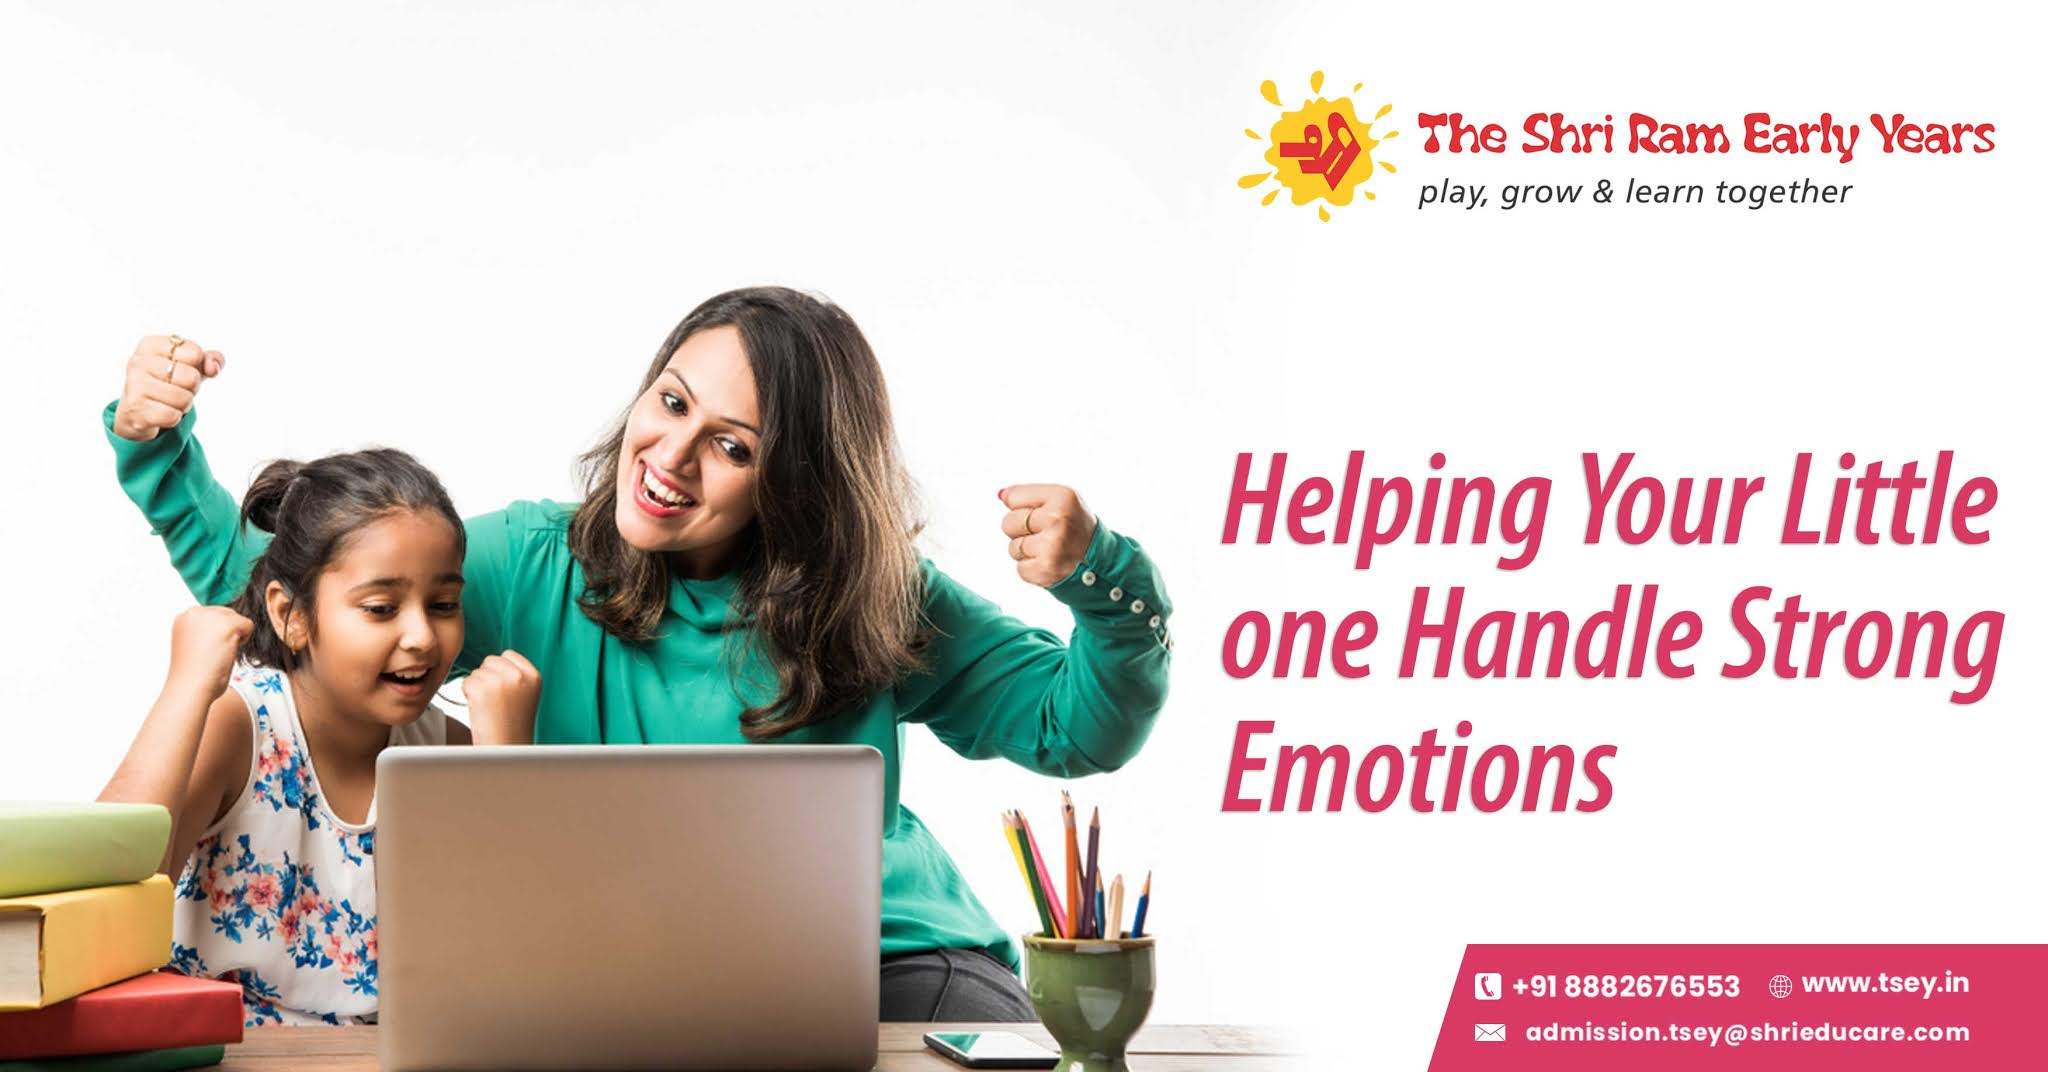 Helping Your Little one Handle Strong Emotions